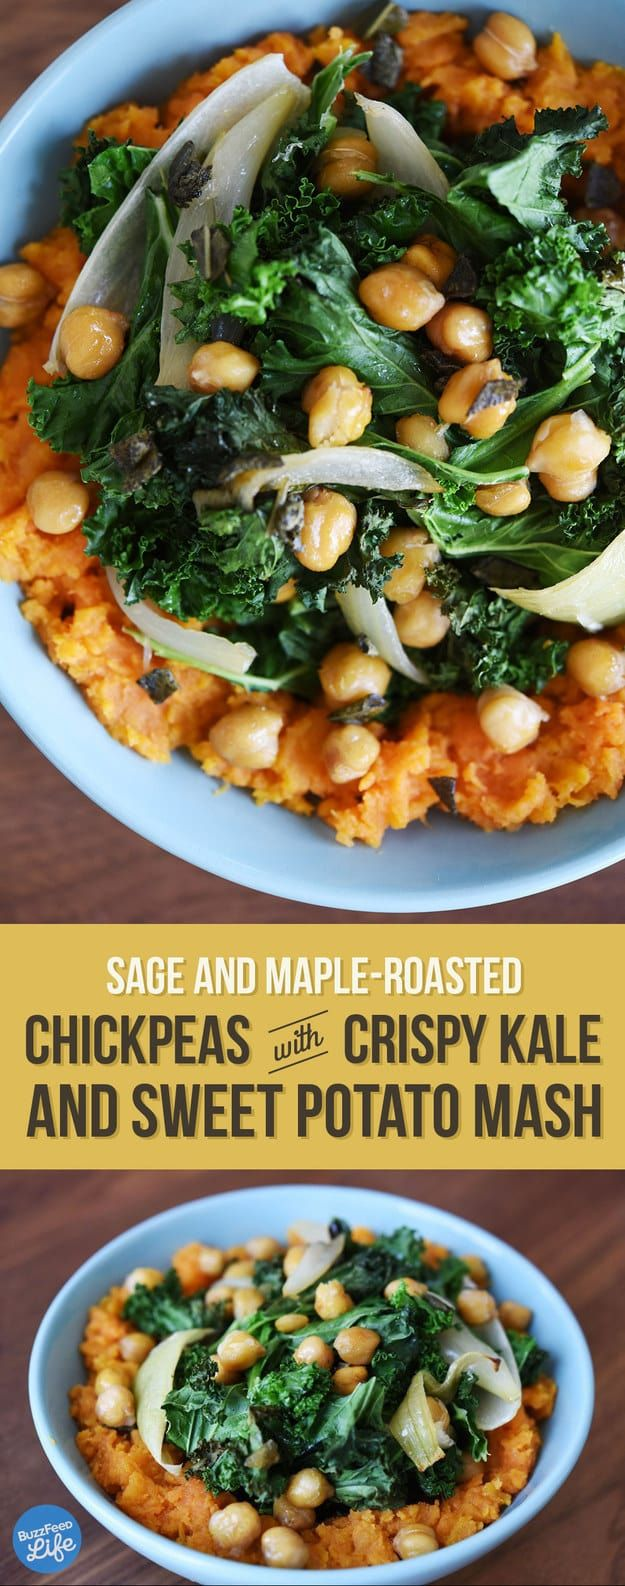 Here's A Delicious, Meatless Dinner To Make On A Weeknight